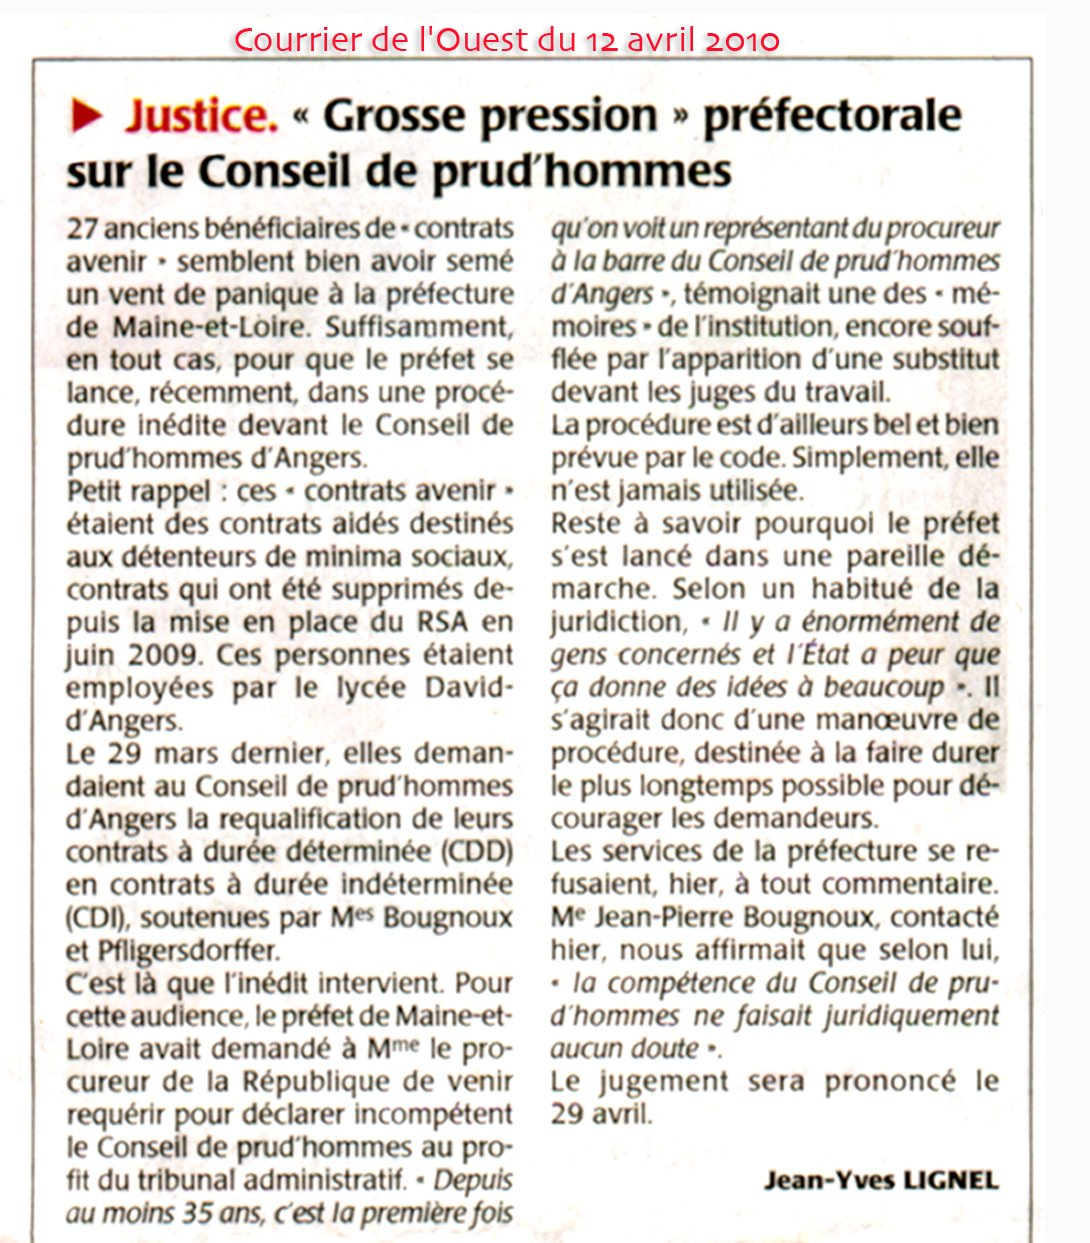 courrierdelouest12042010.jpg